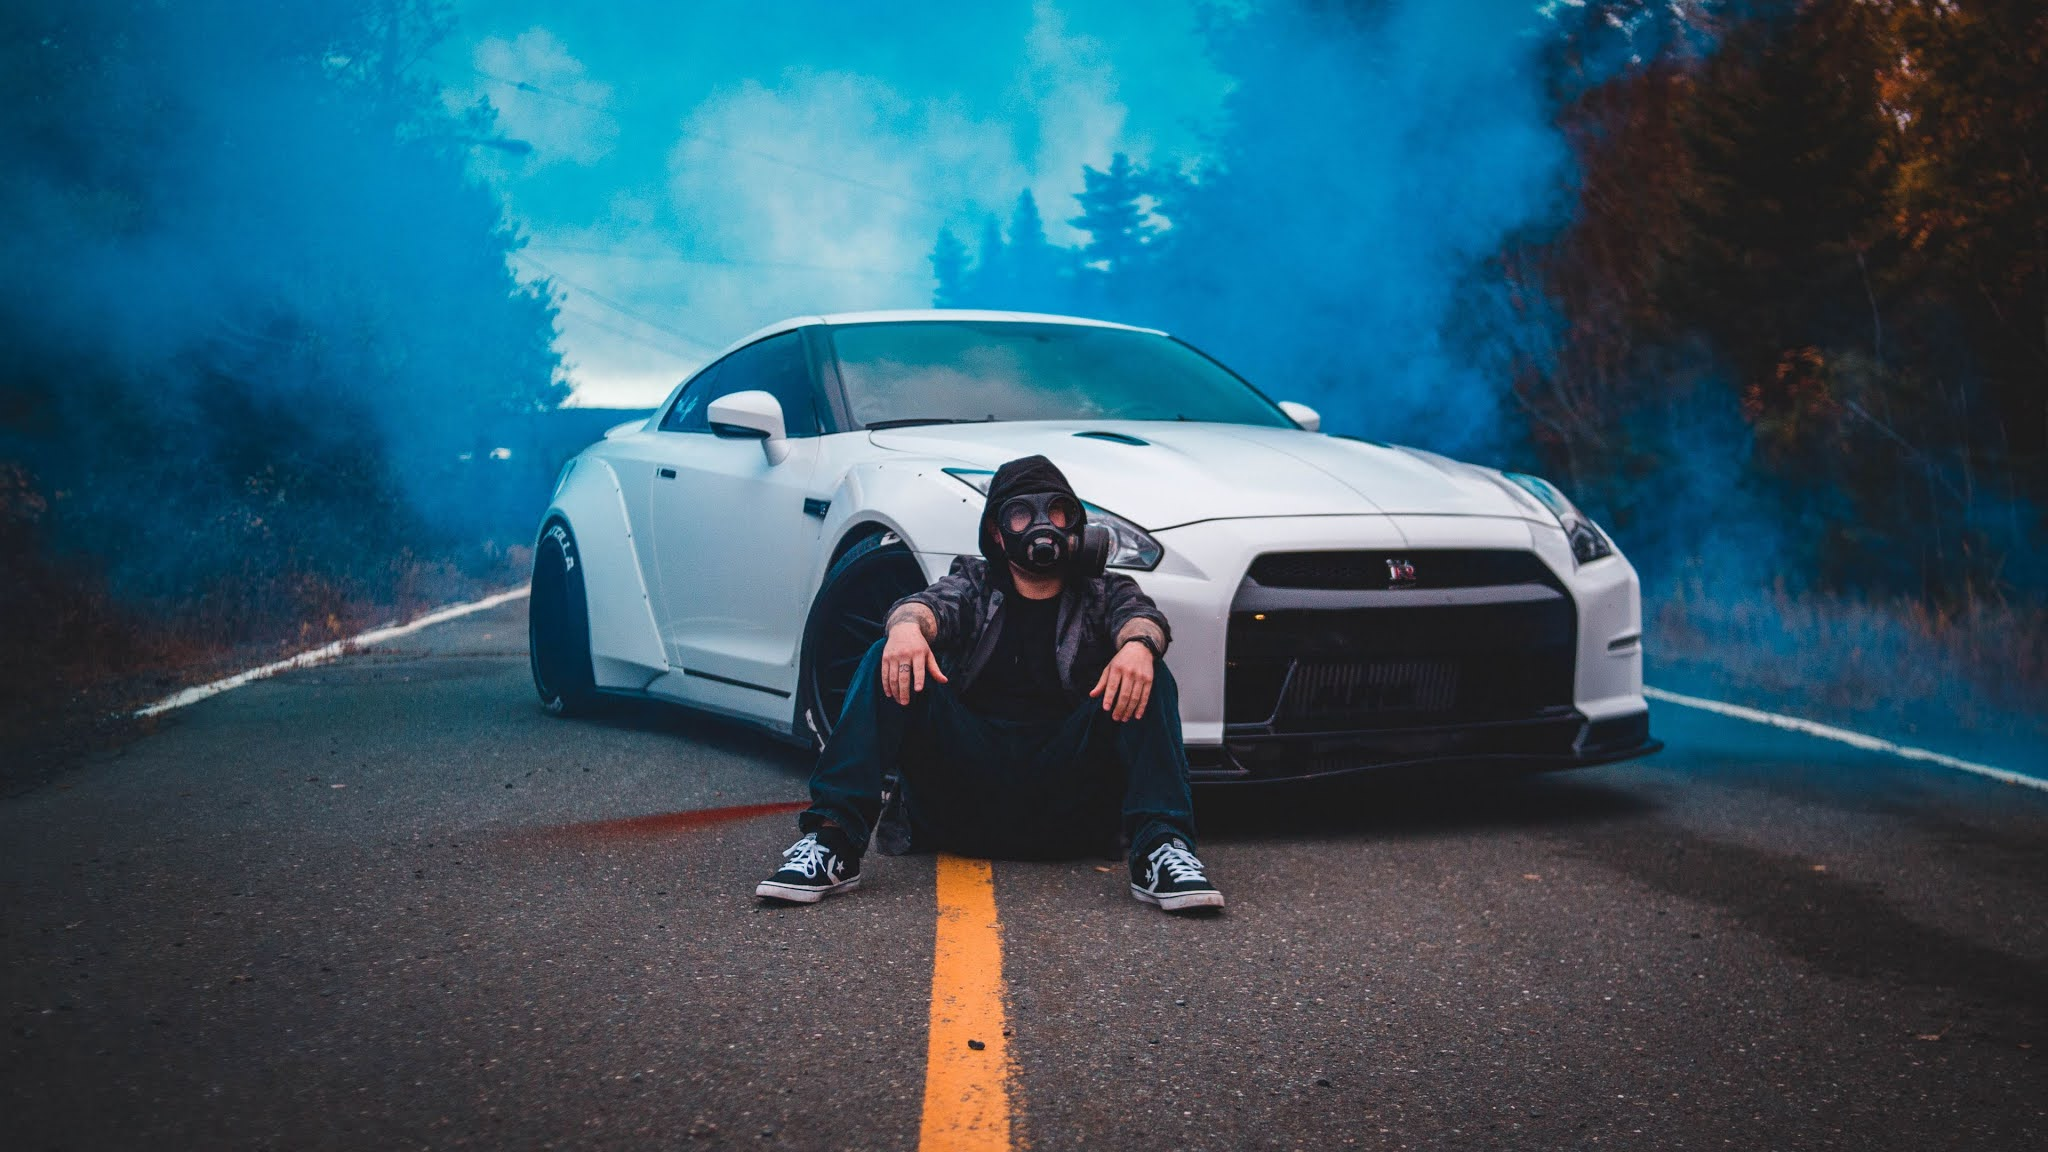 Anonymous Mask Guy White Car Road Anonymous mask guy white car road